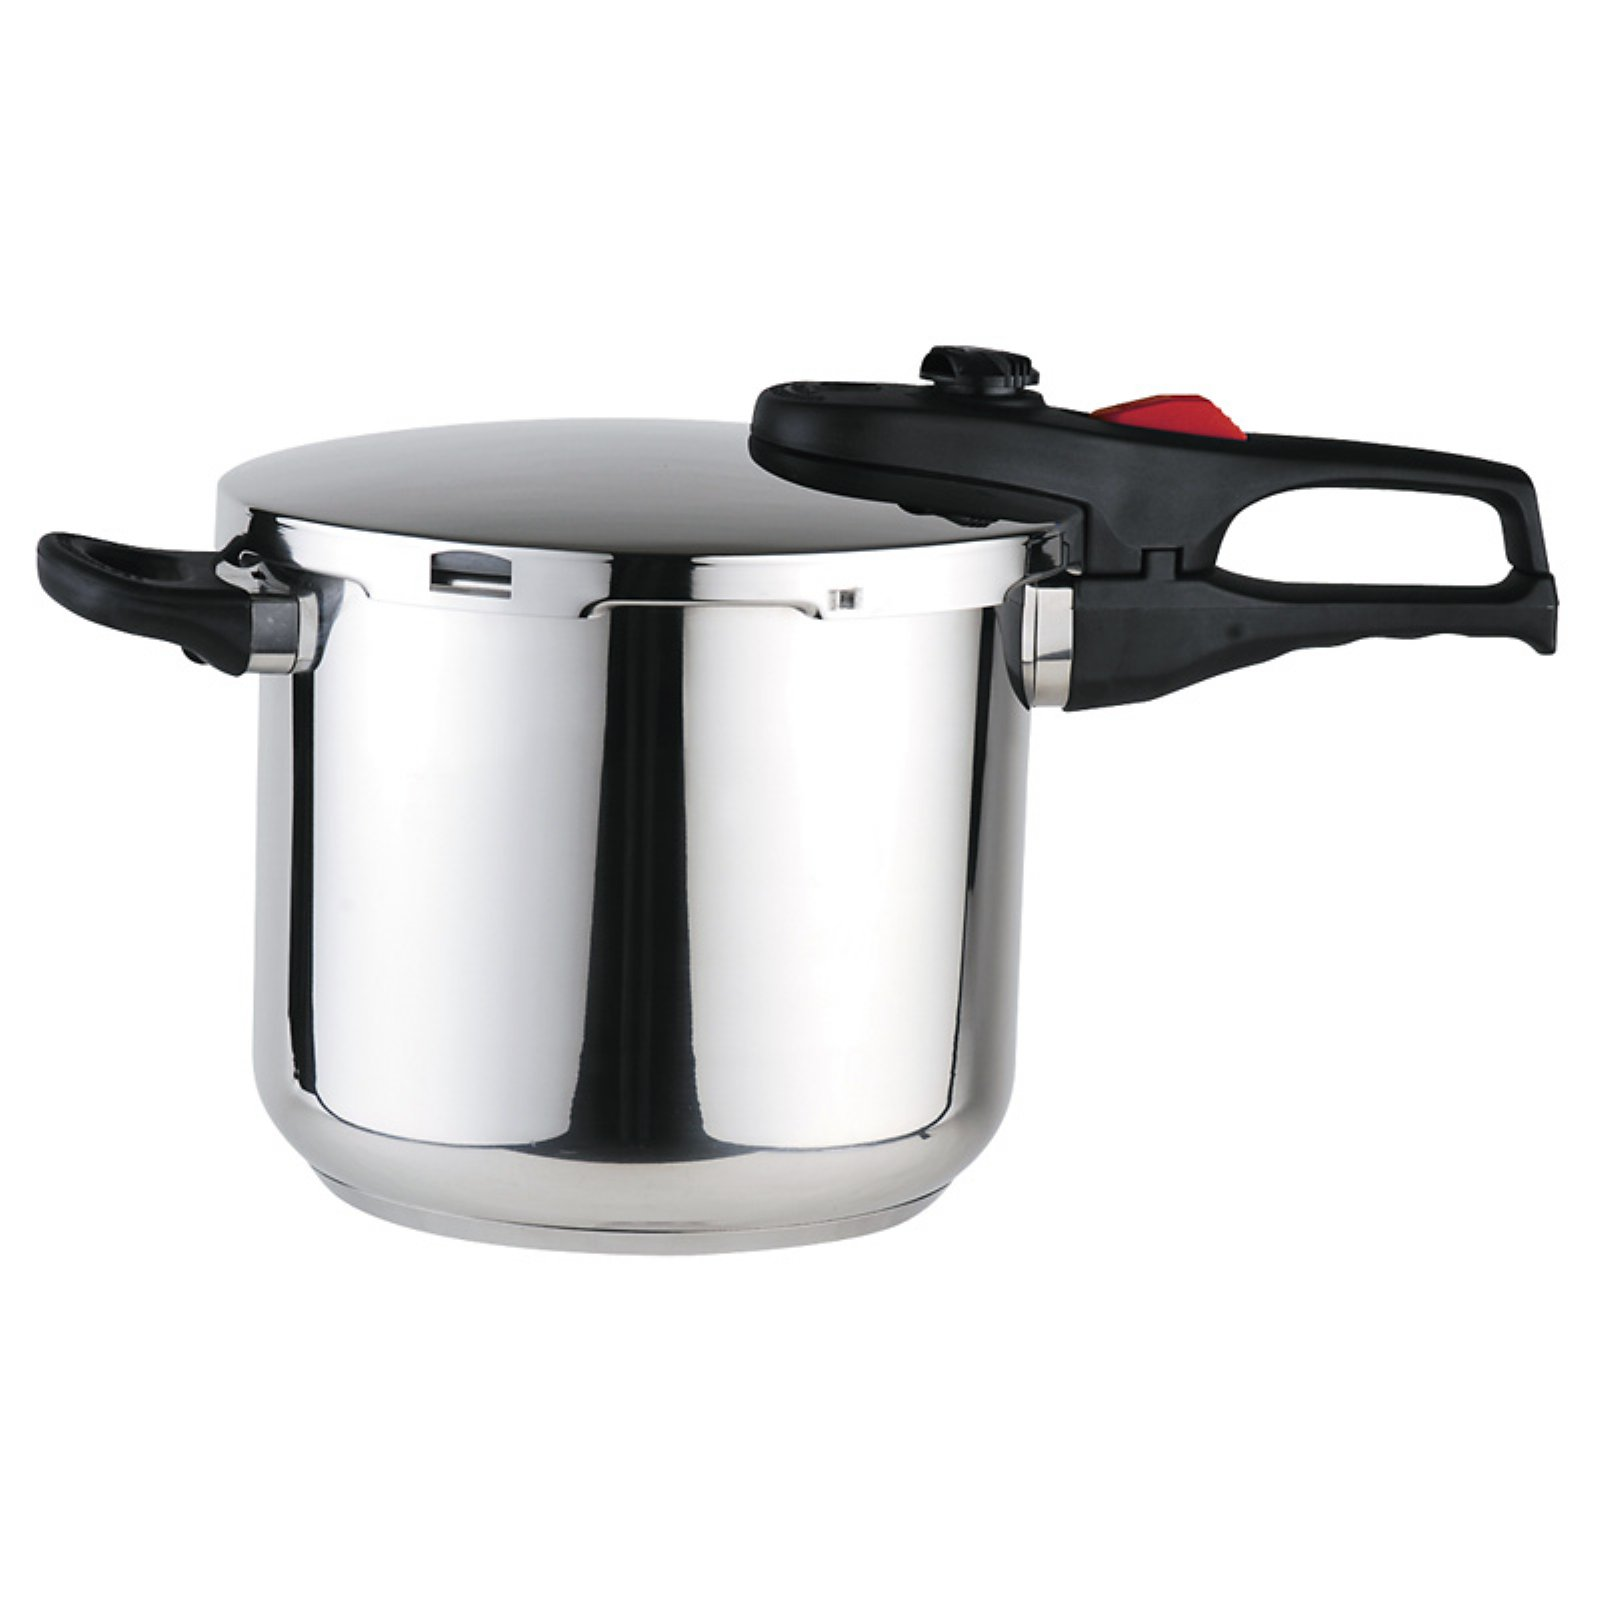 Practika Plus 8 Qts. Stainless Steel Pressure Cooker